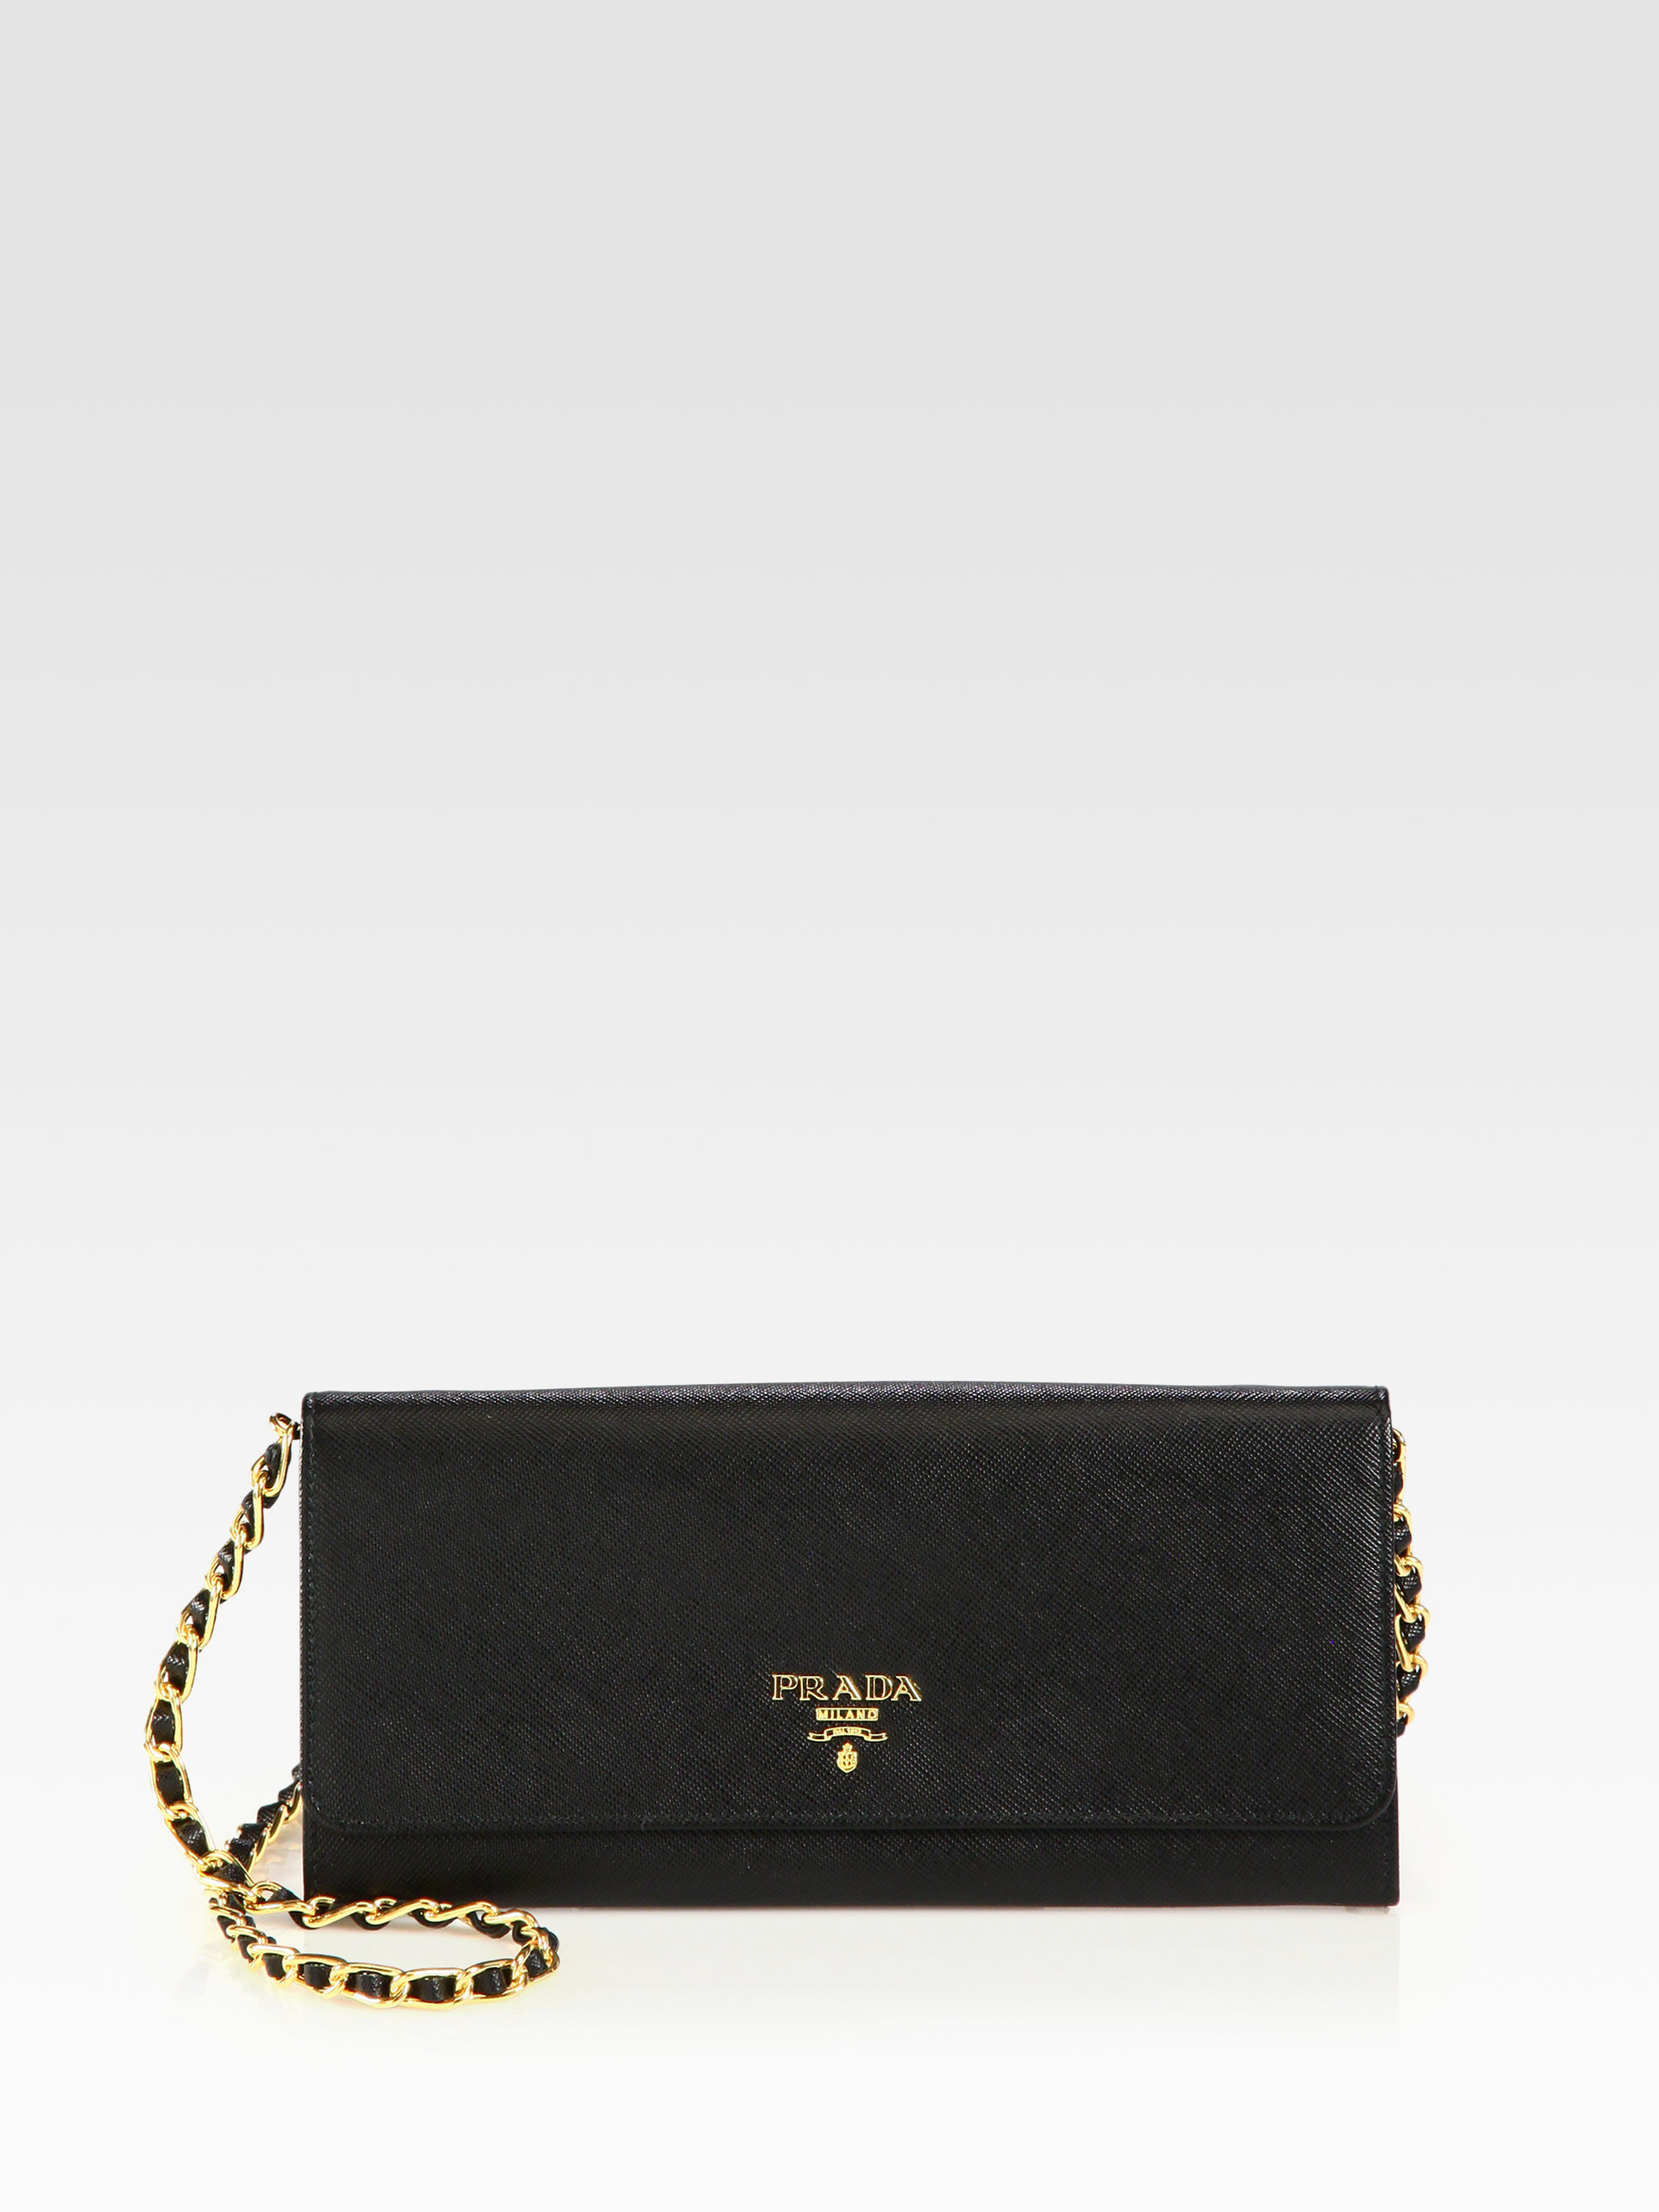 Prada Saffiano Metal Oro Chain Wallet in Black (nero-black) | Lyst